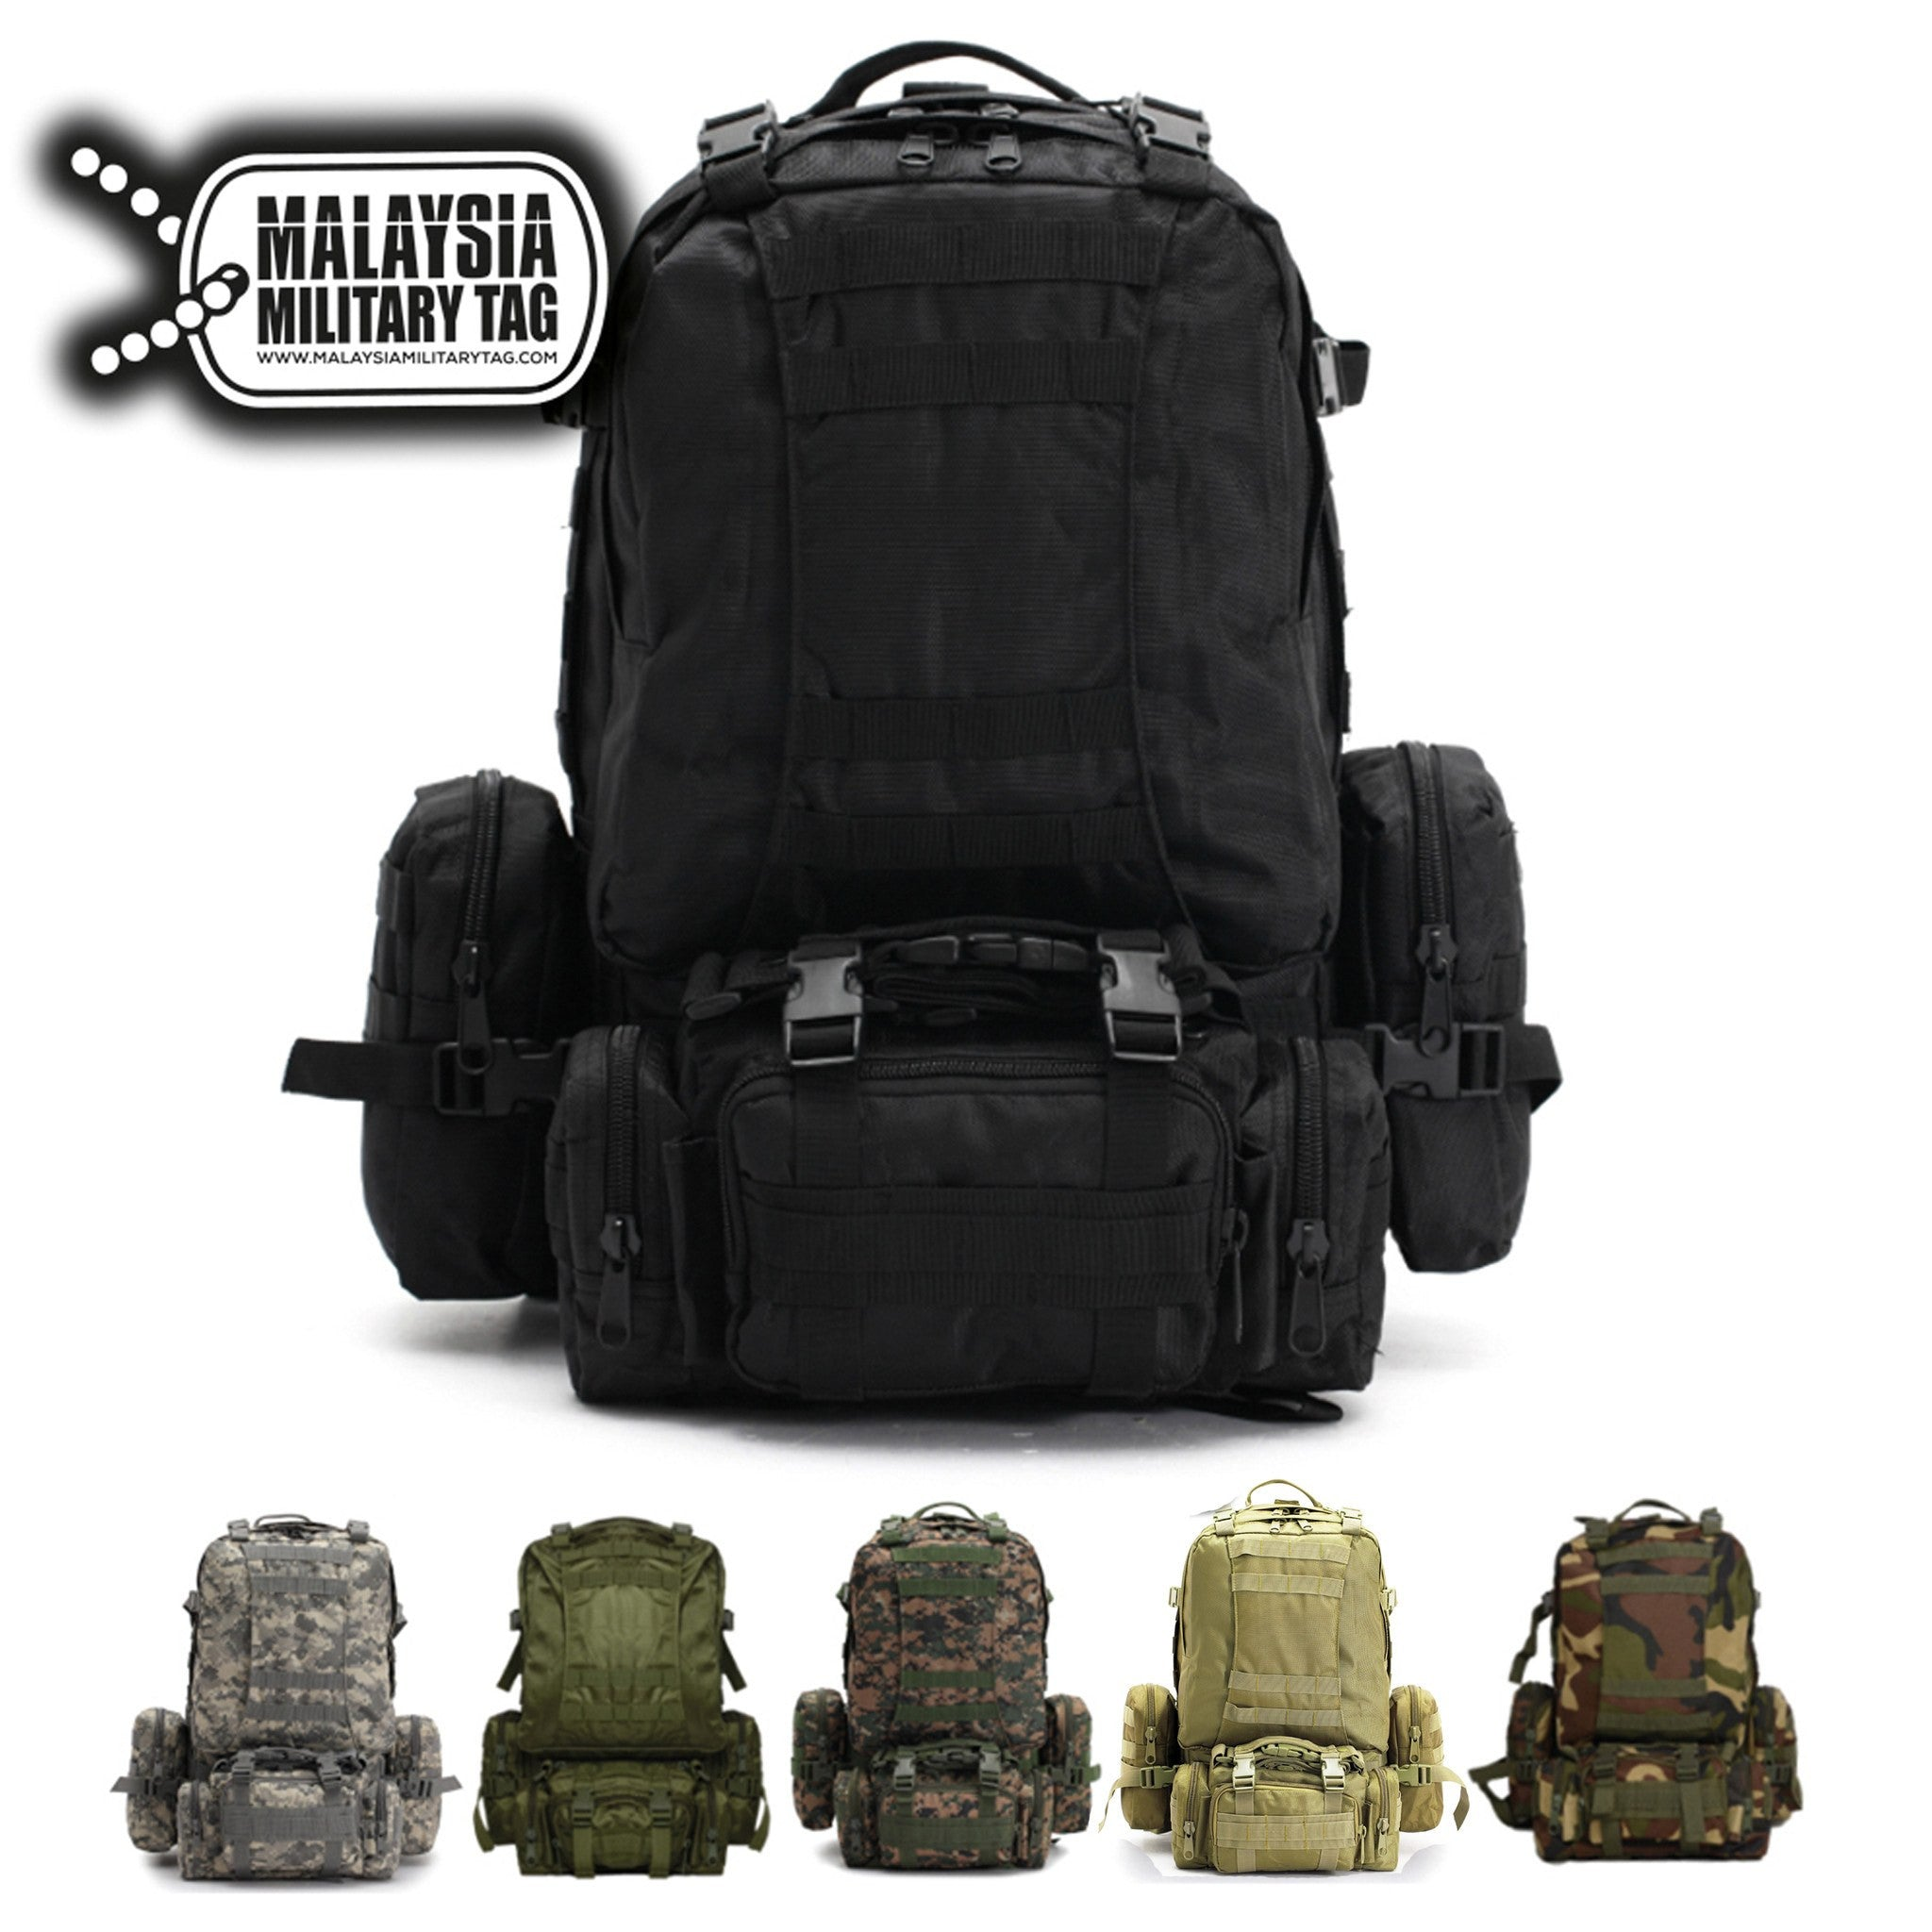 55L Tactical Military backpack(Free Shipping in Malaysia) 73bf18f25c